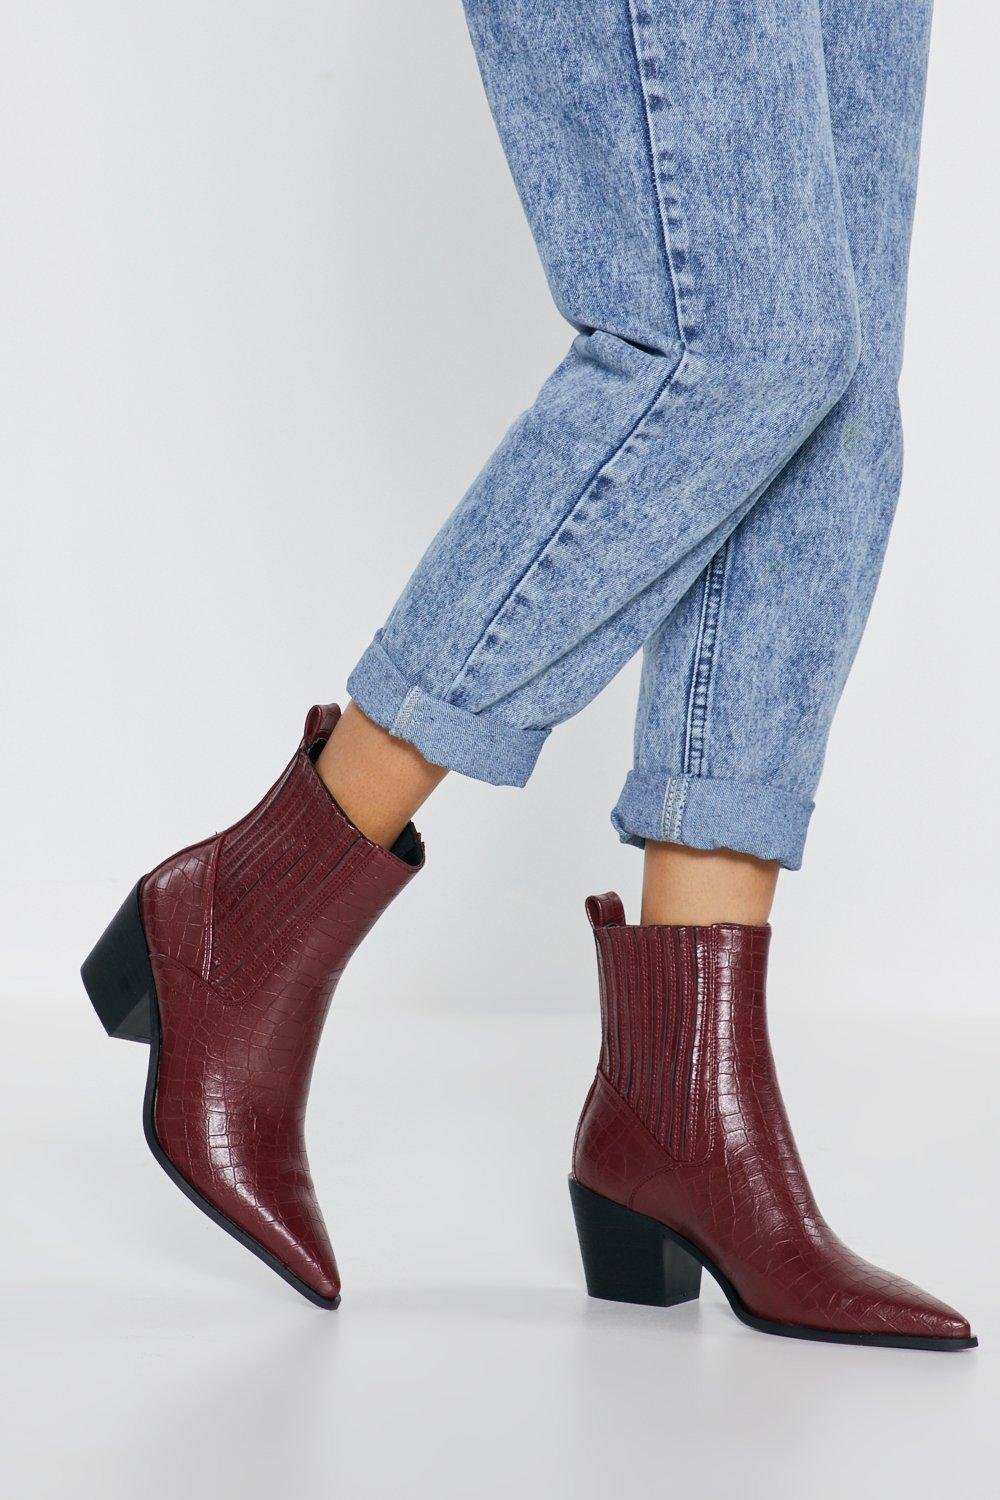 30dbd1e7f44 Run Off Your Feet Croc Faux Leather Boots | Shop Clothes at Nasty Gal!